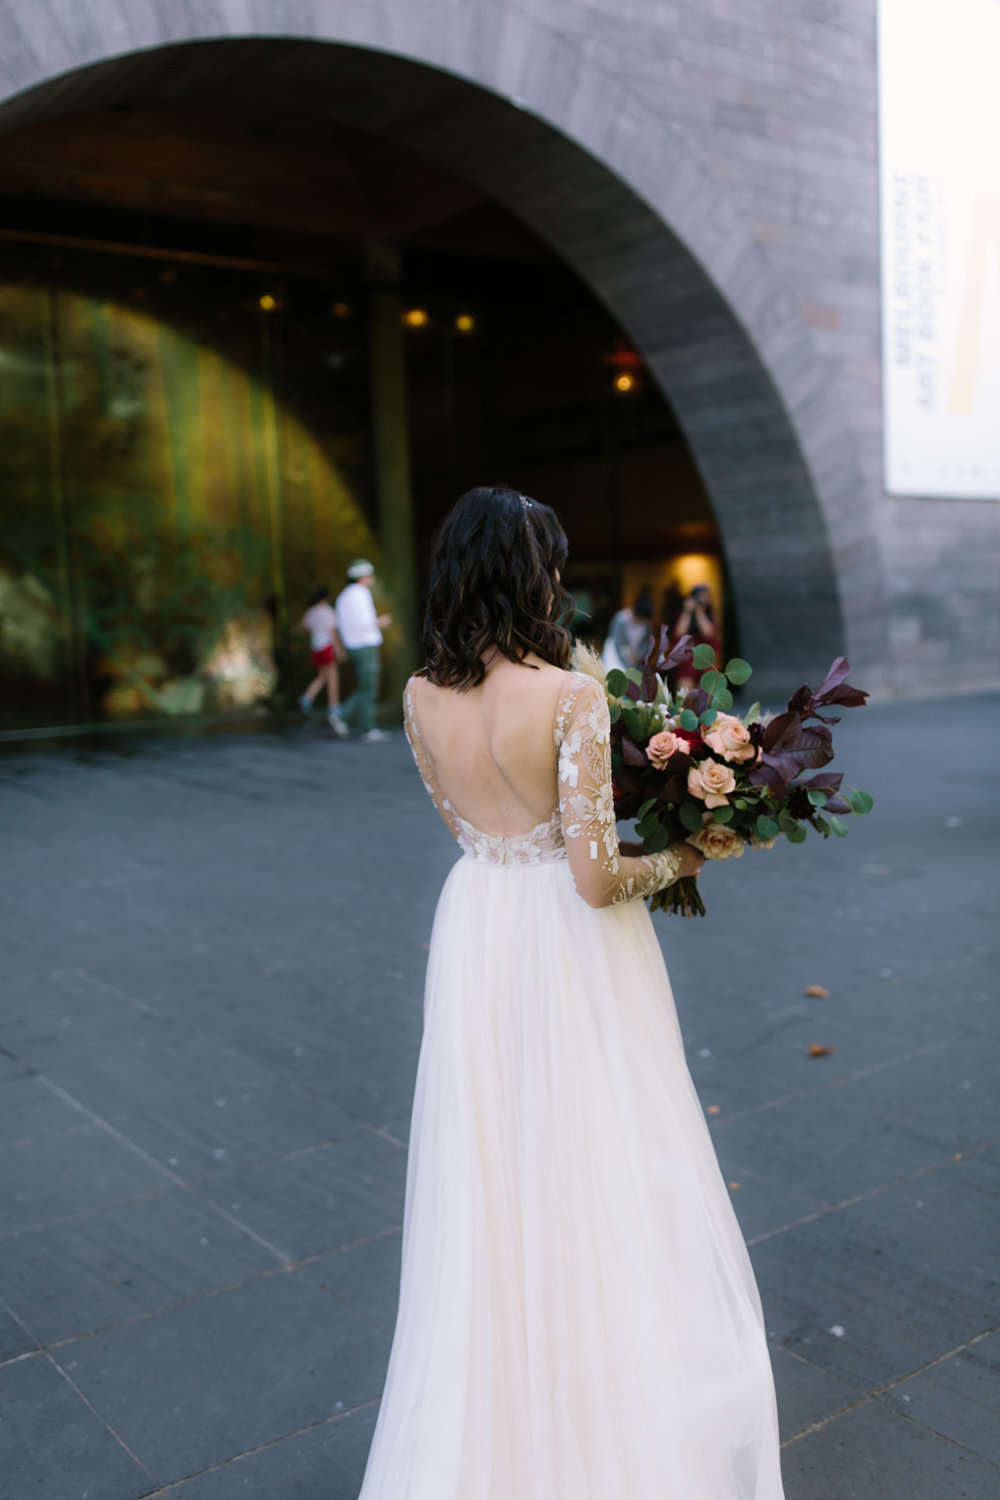 I-Got-You-Babe-Weddings-Hayley-Sam-NGV-Melbourne0022.JPG